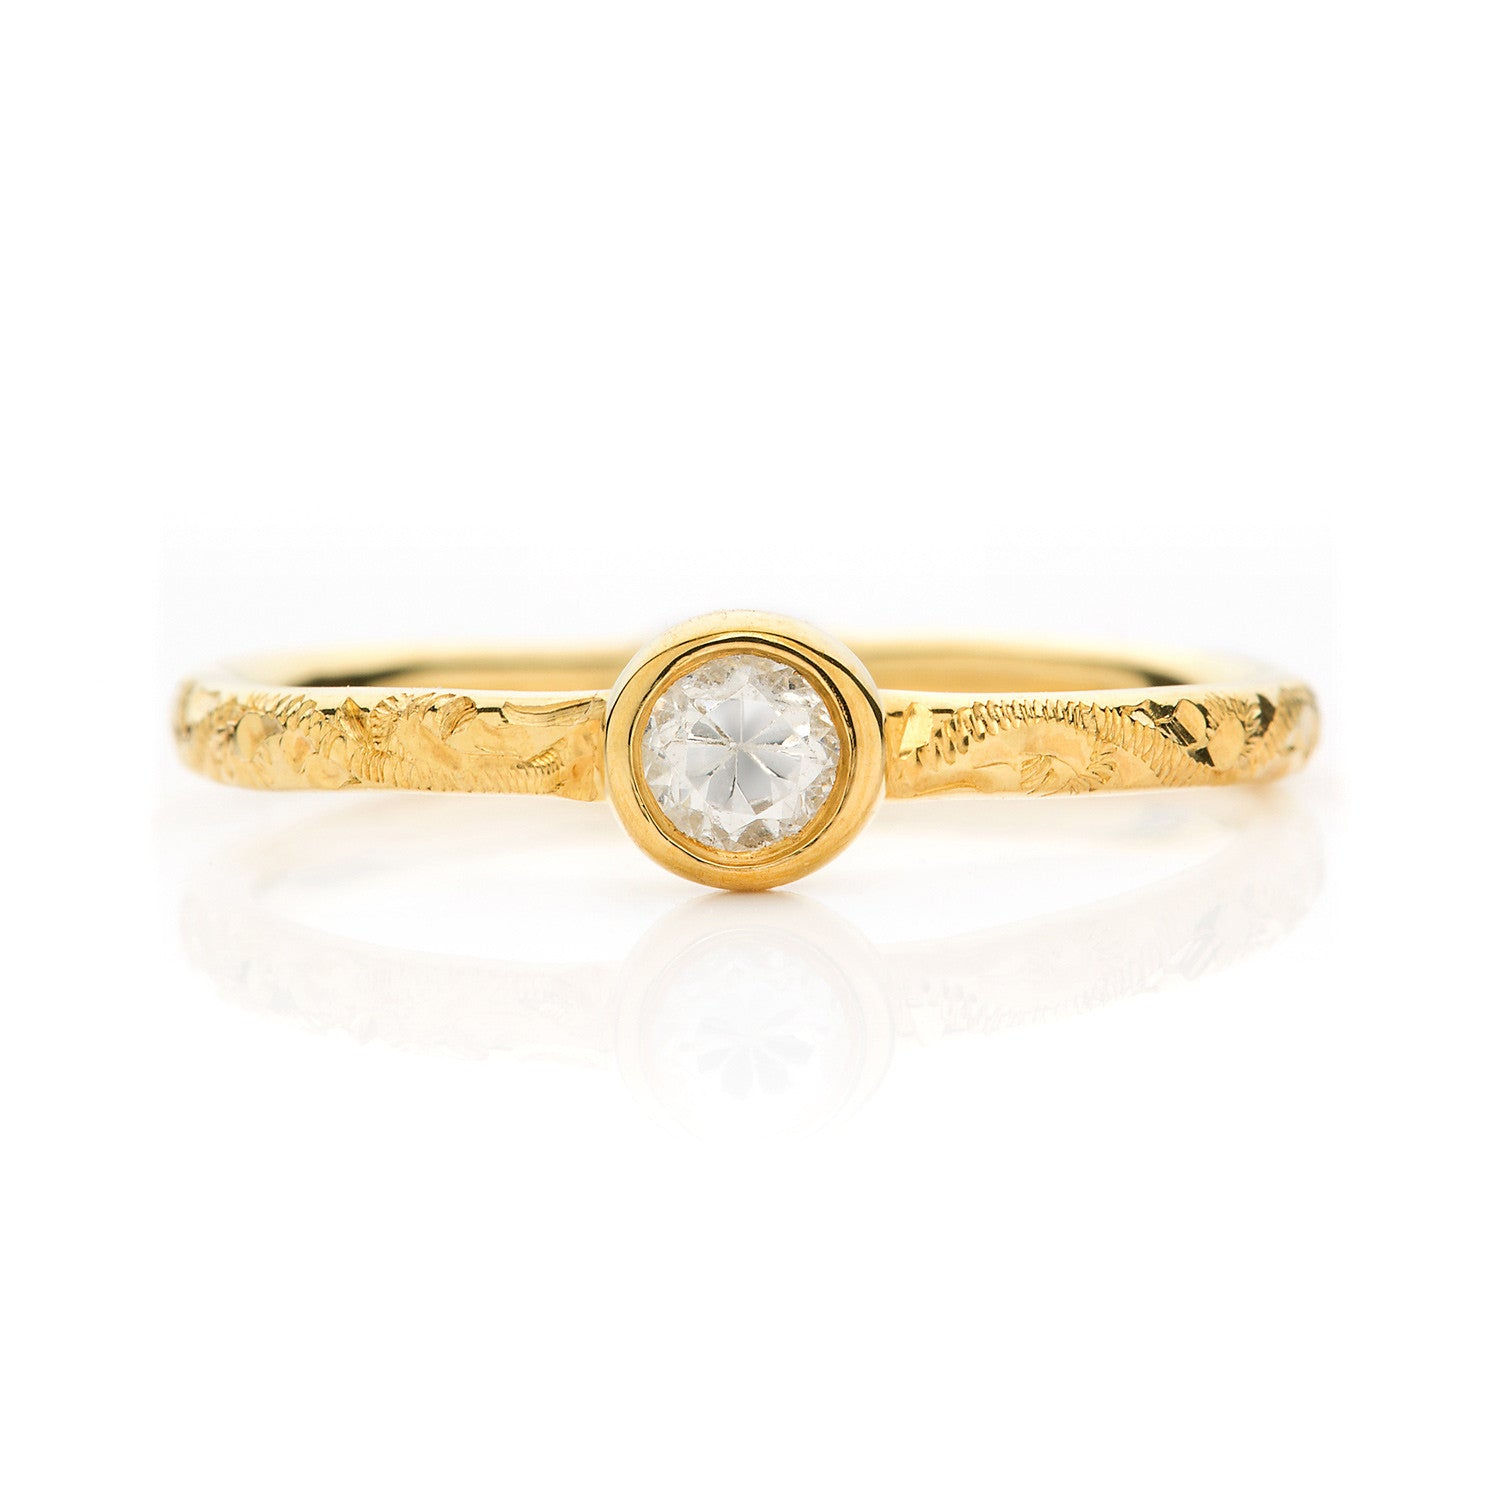 Hera Ethical Diamond Engagement Ring, 18ct Ethical Gold